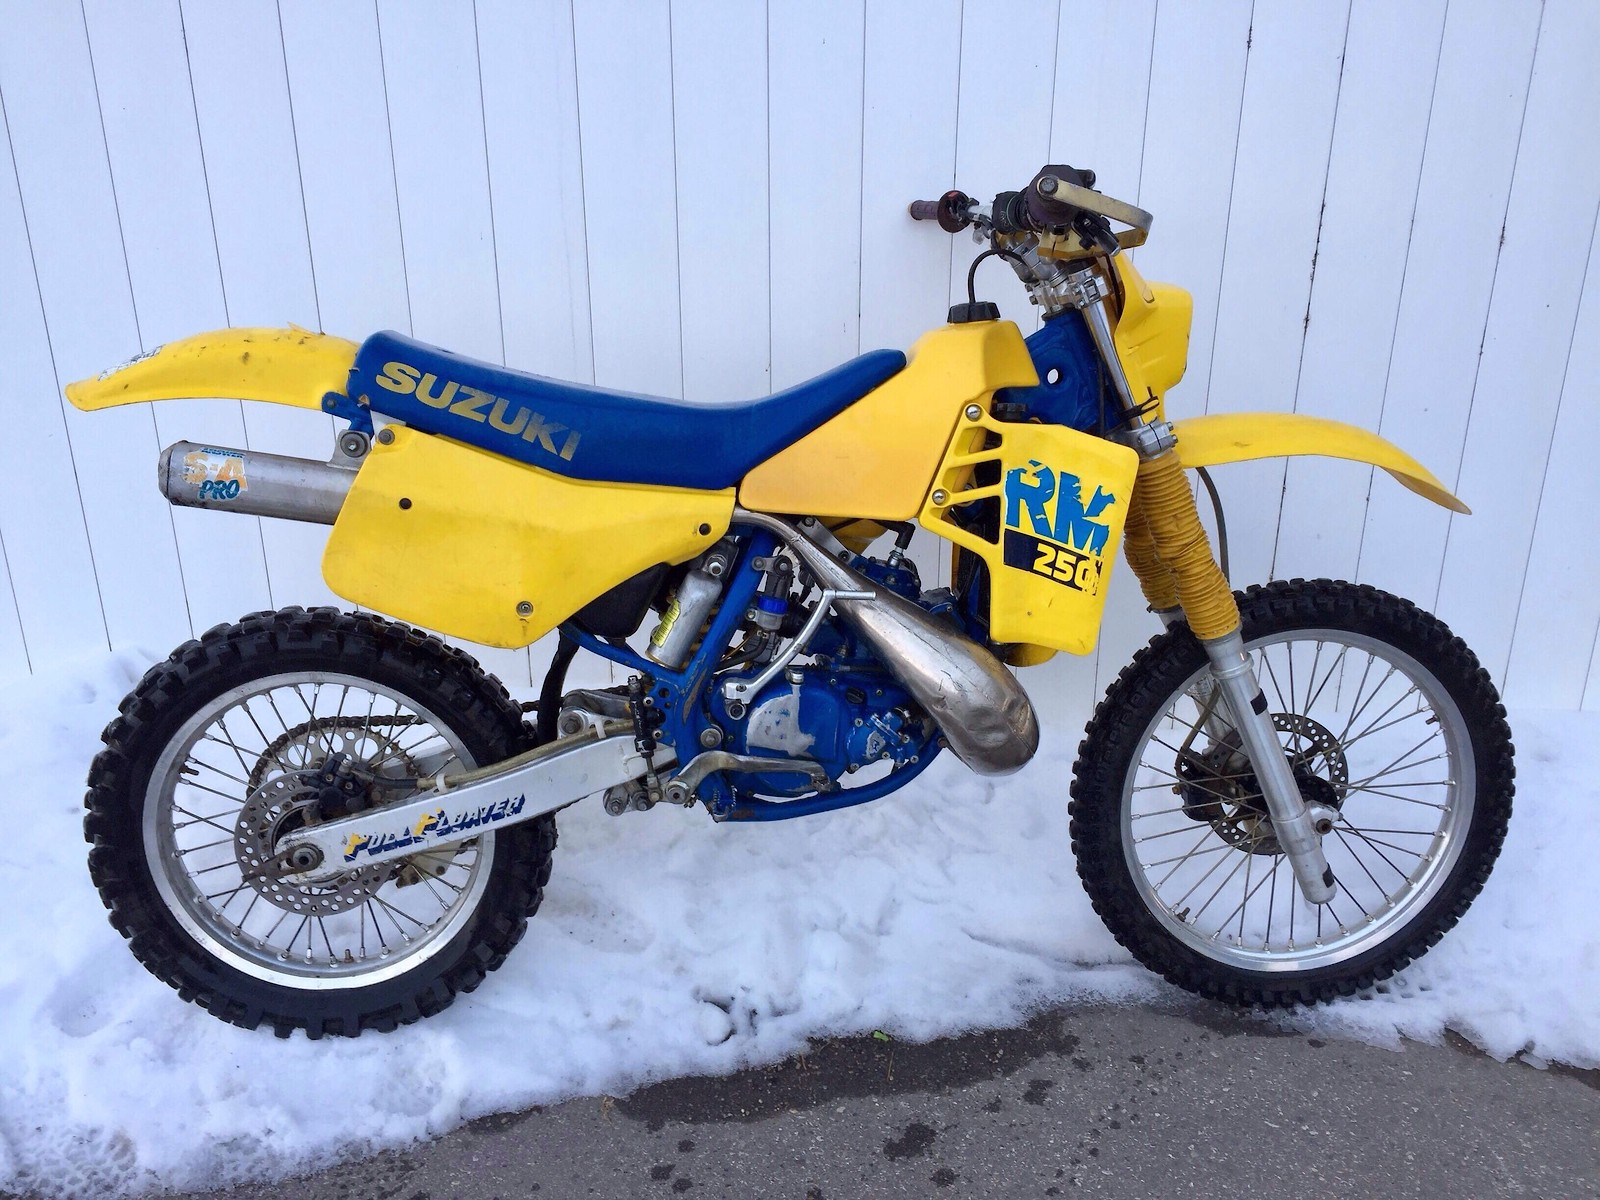 1988 Rm250 Seat Cover   Old School Moto   Motocross Forums 1600x1200